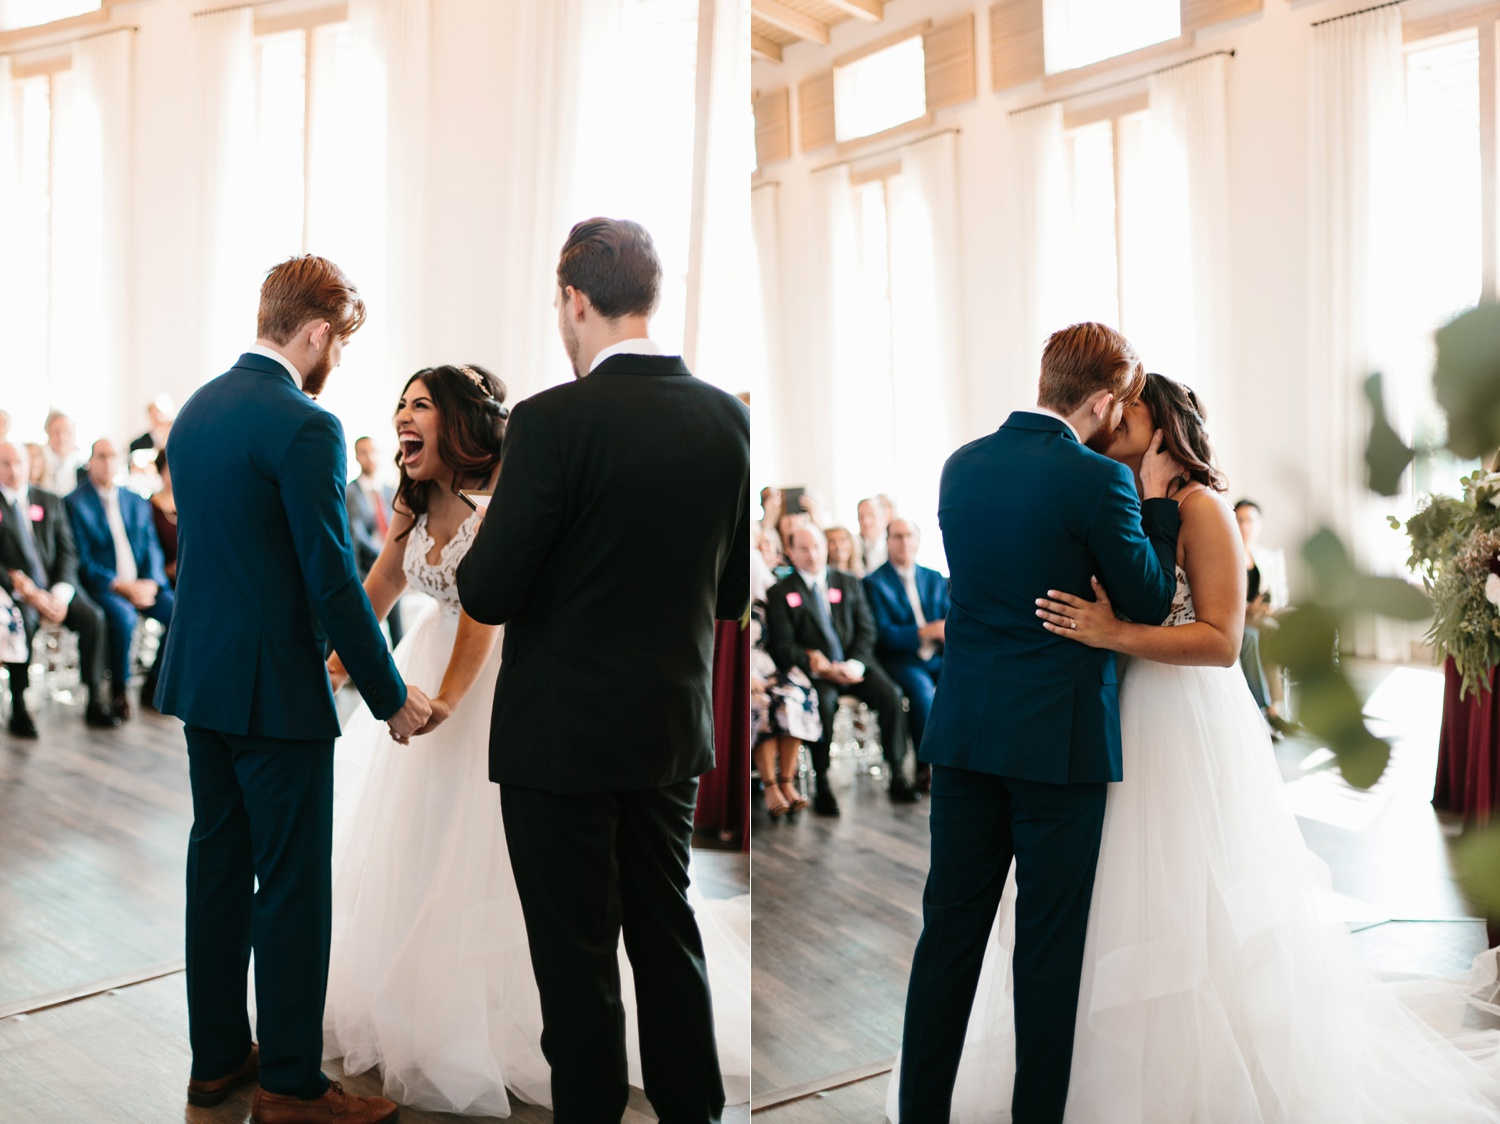 Grant + Lysette | a vibrant, deep burgundy and navy, and mixed metals wedding at Hidden Pines Chapel by North Texas Wedding Photographer Rachel Meagan Photography 107